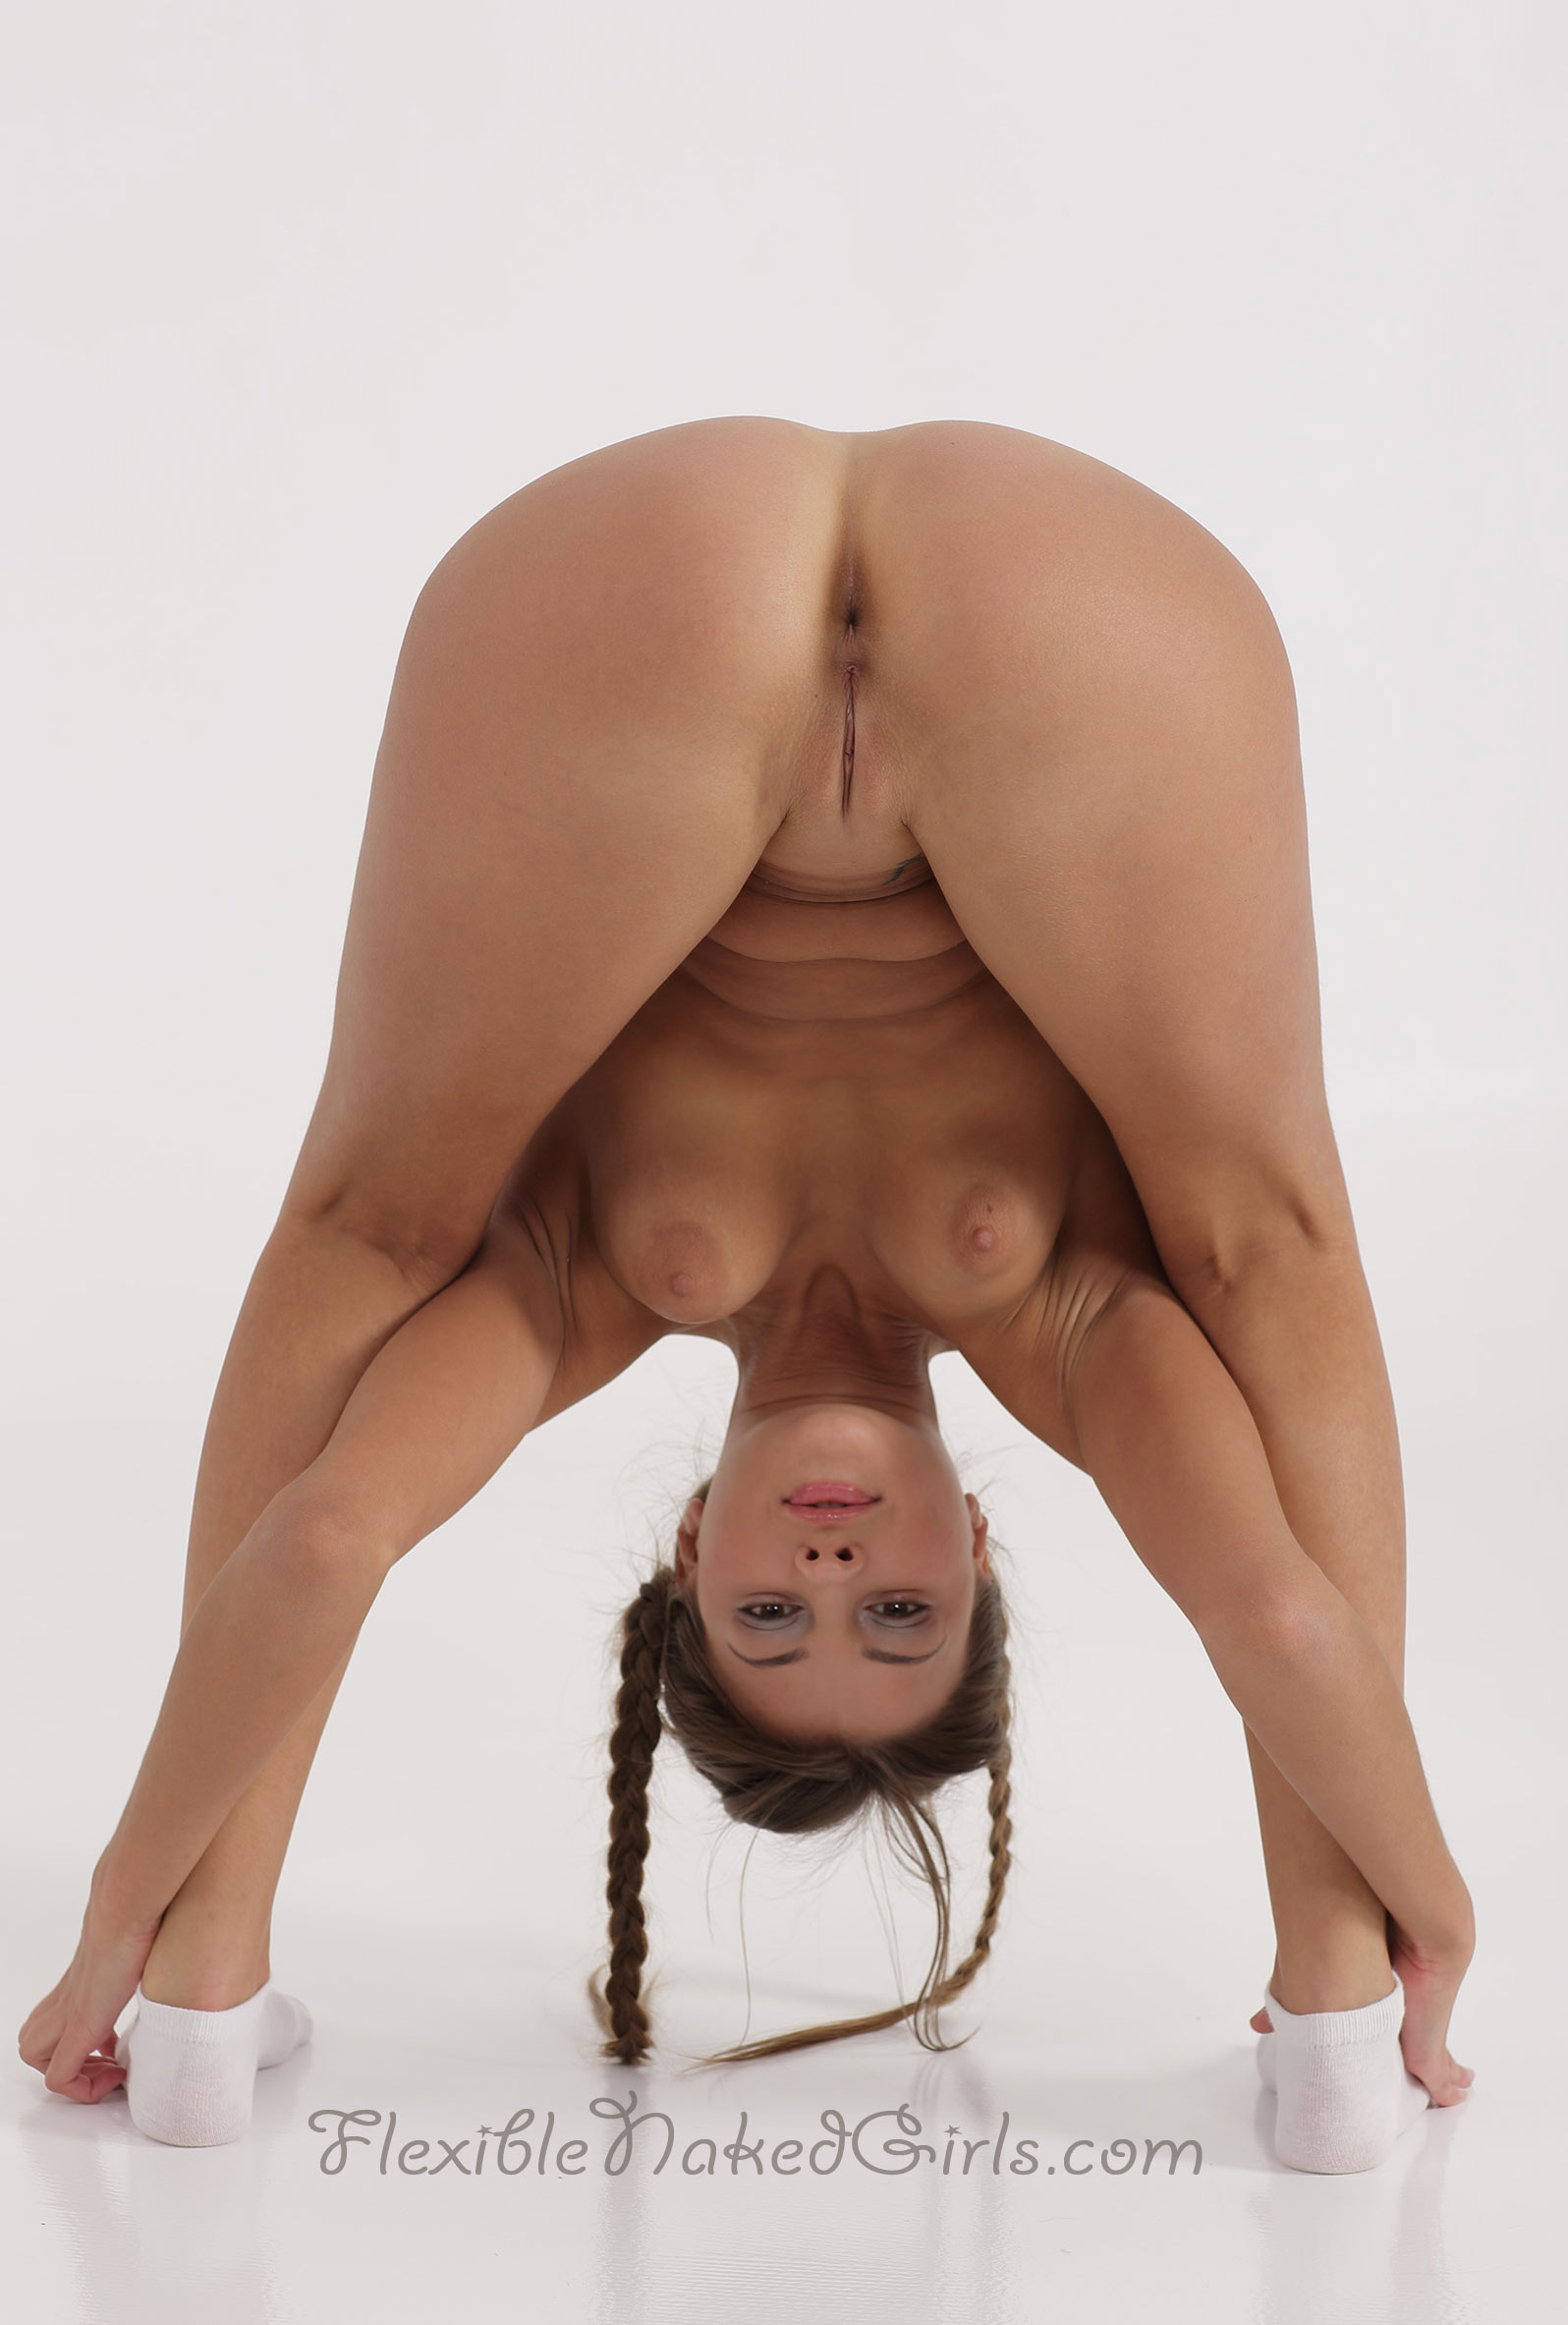 Super flexible nude girls